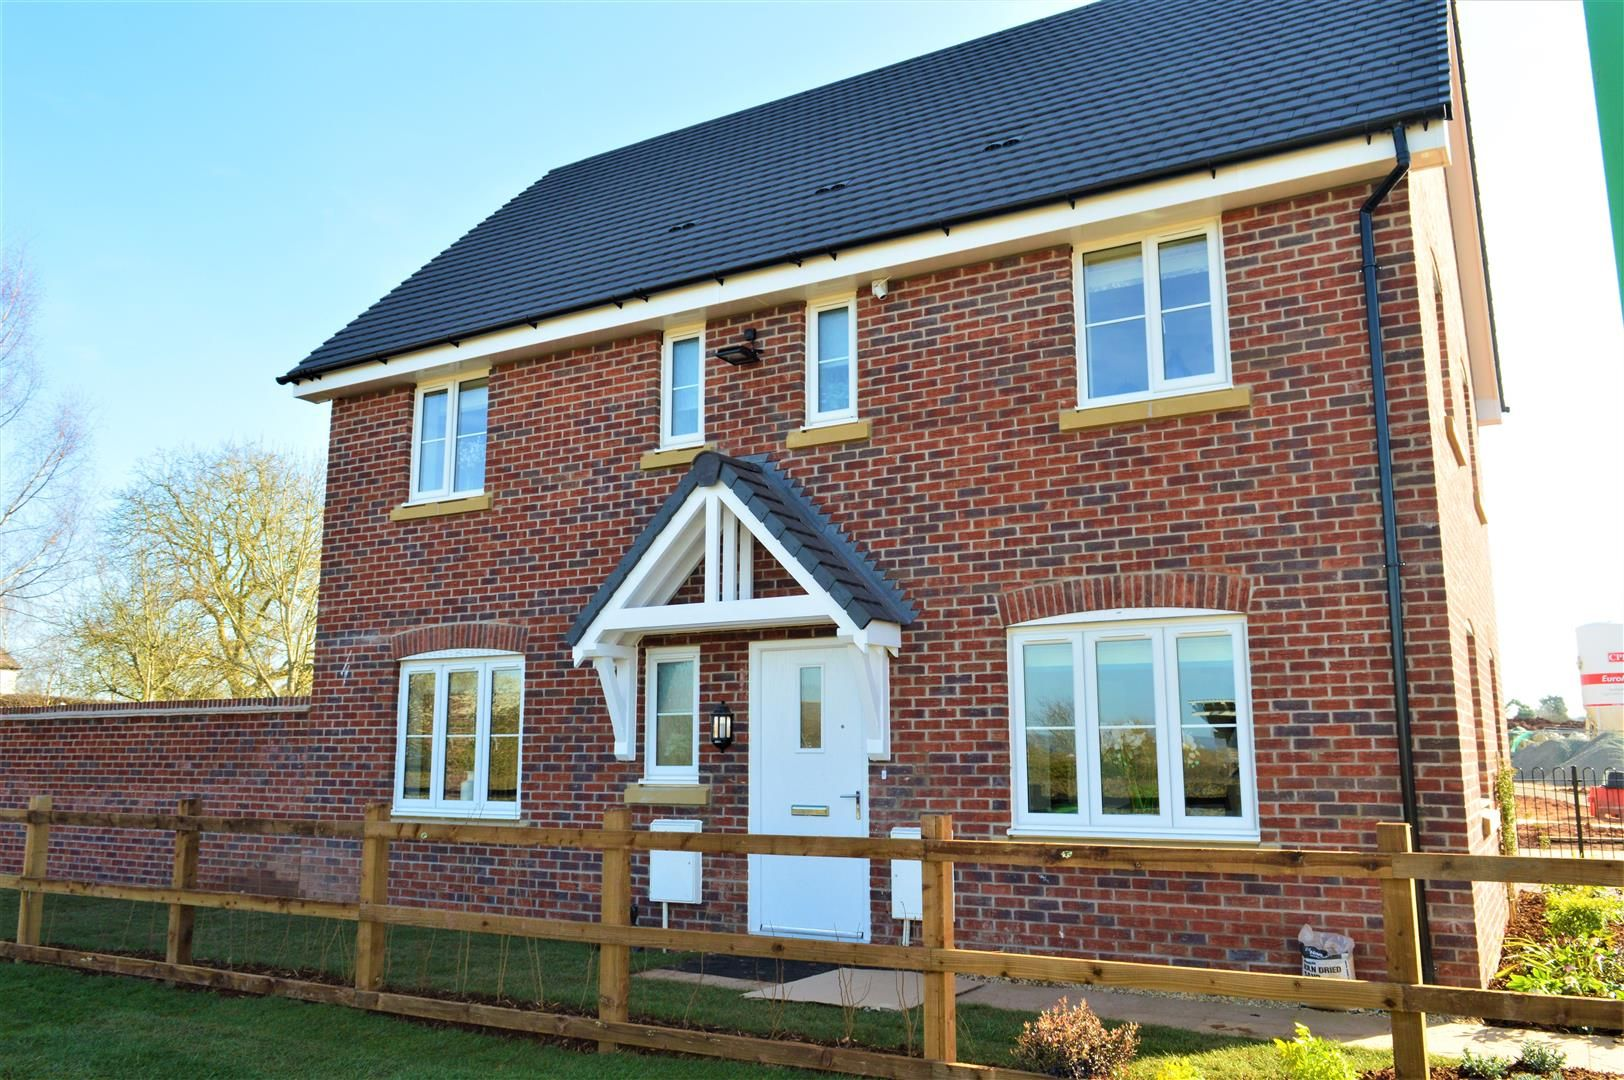 3 bed detached for sale in Kingstone 1